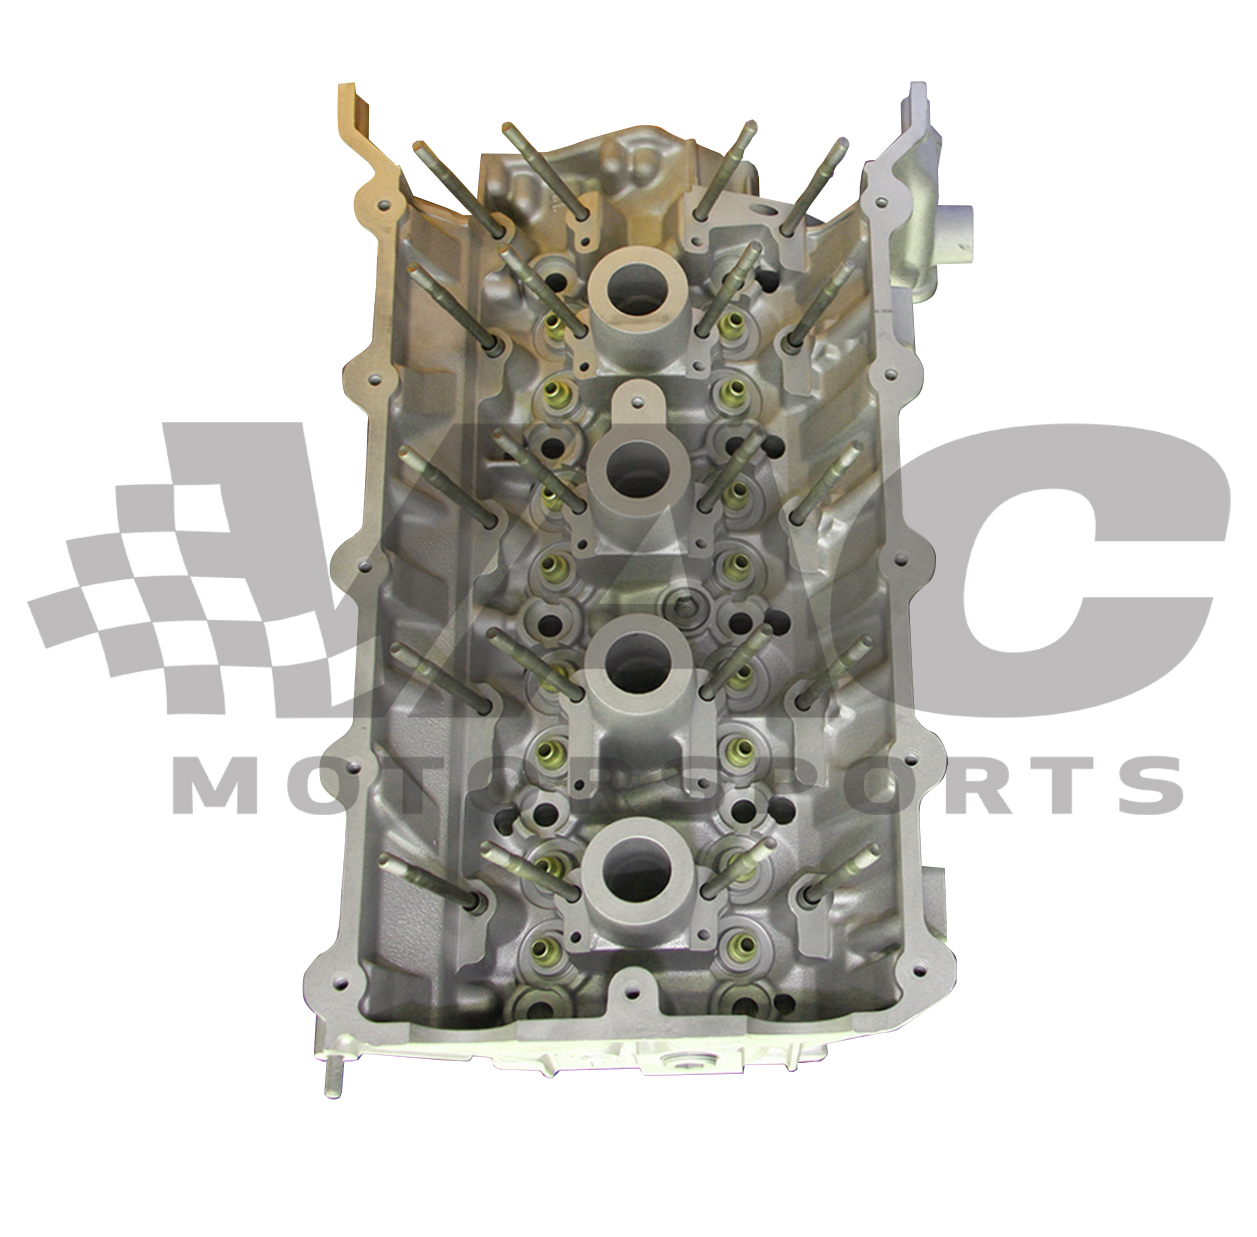 VAC - M44 Stage 1 Performance Cylinder Head THUMBNAIL